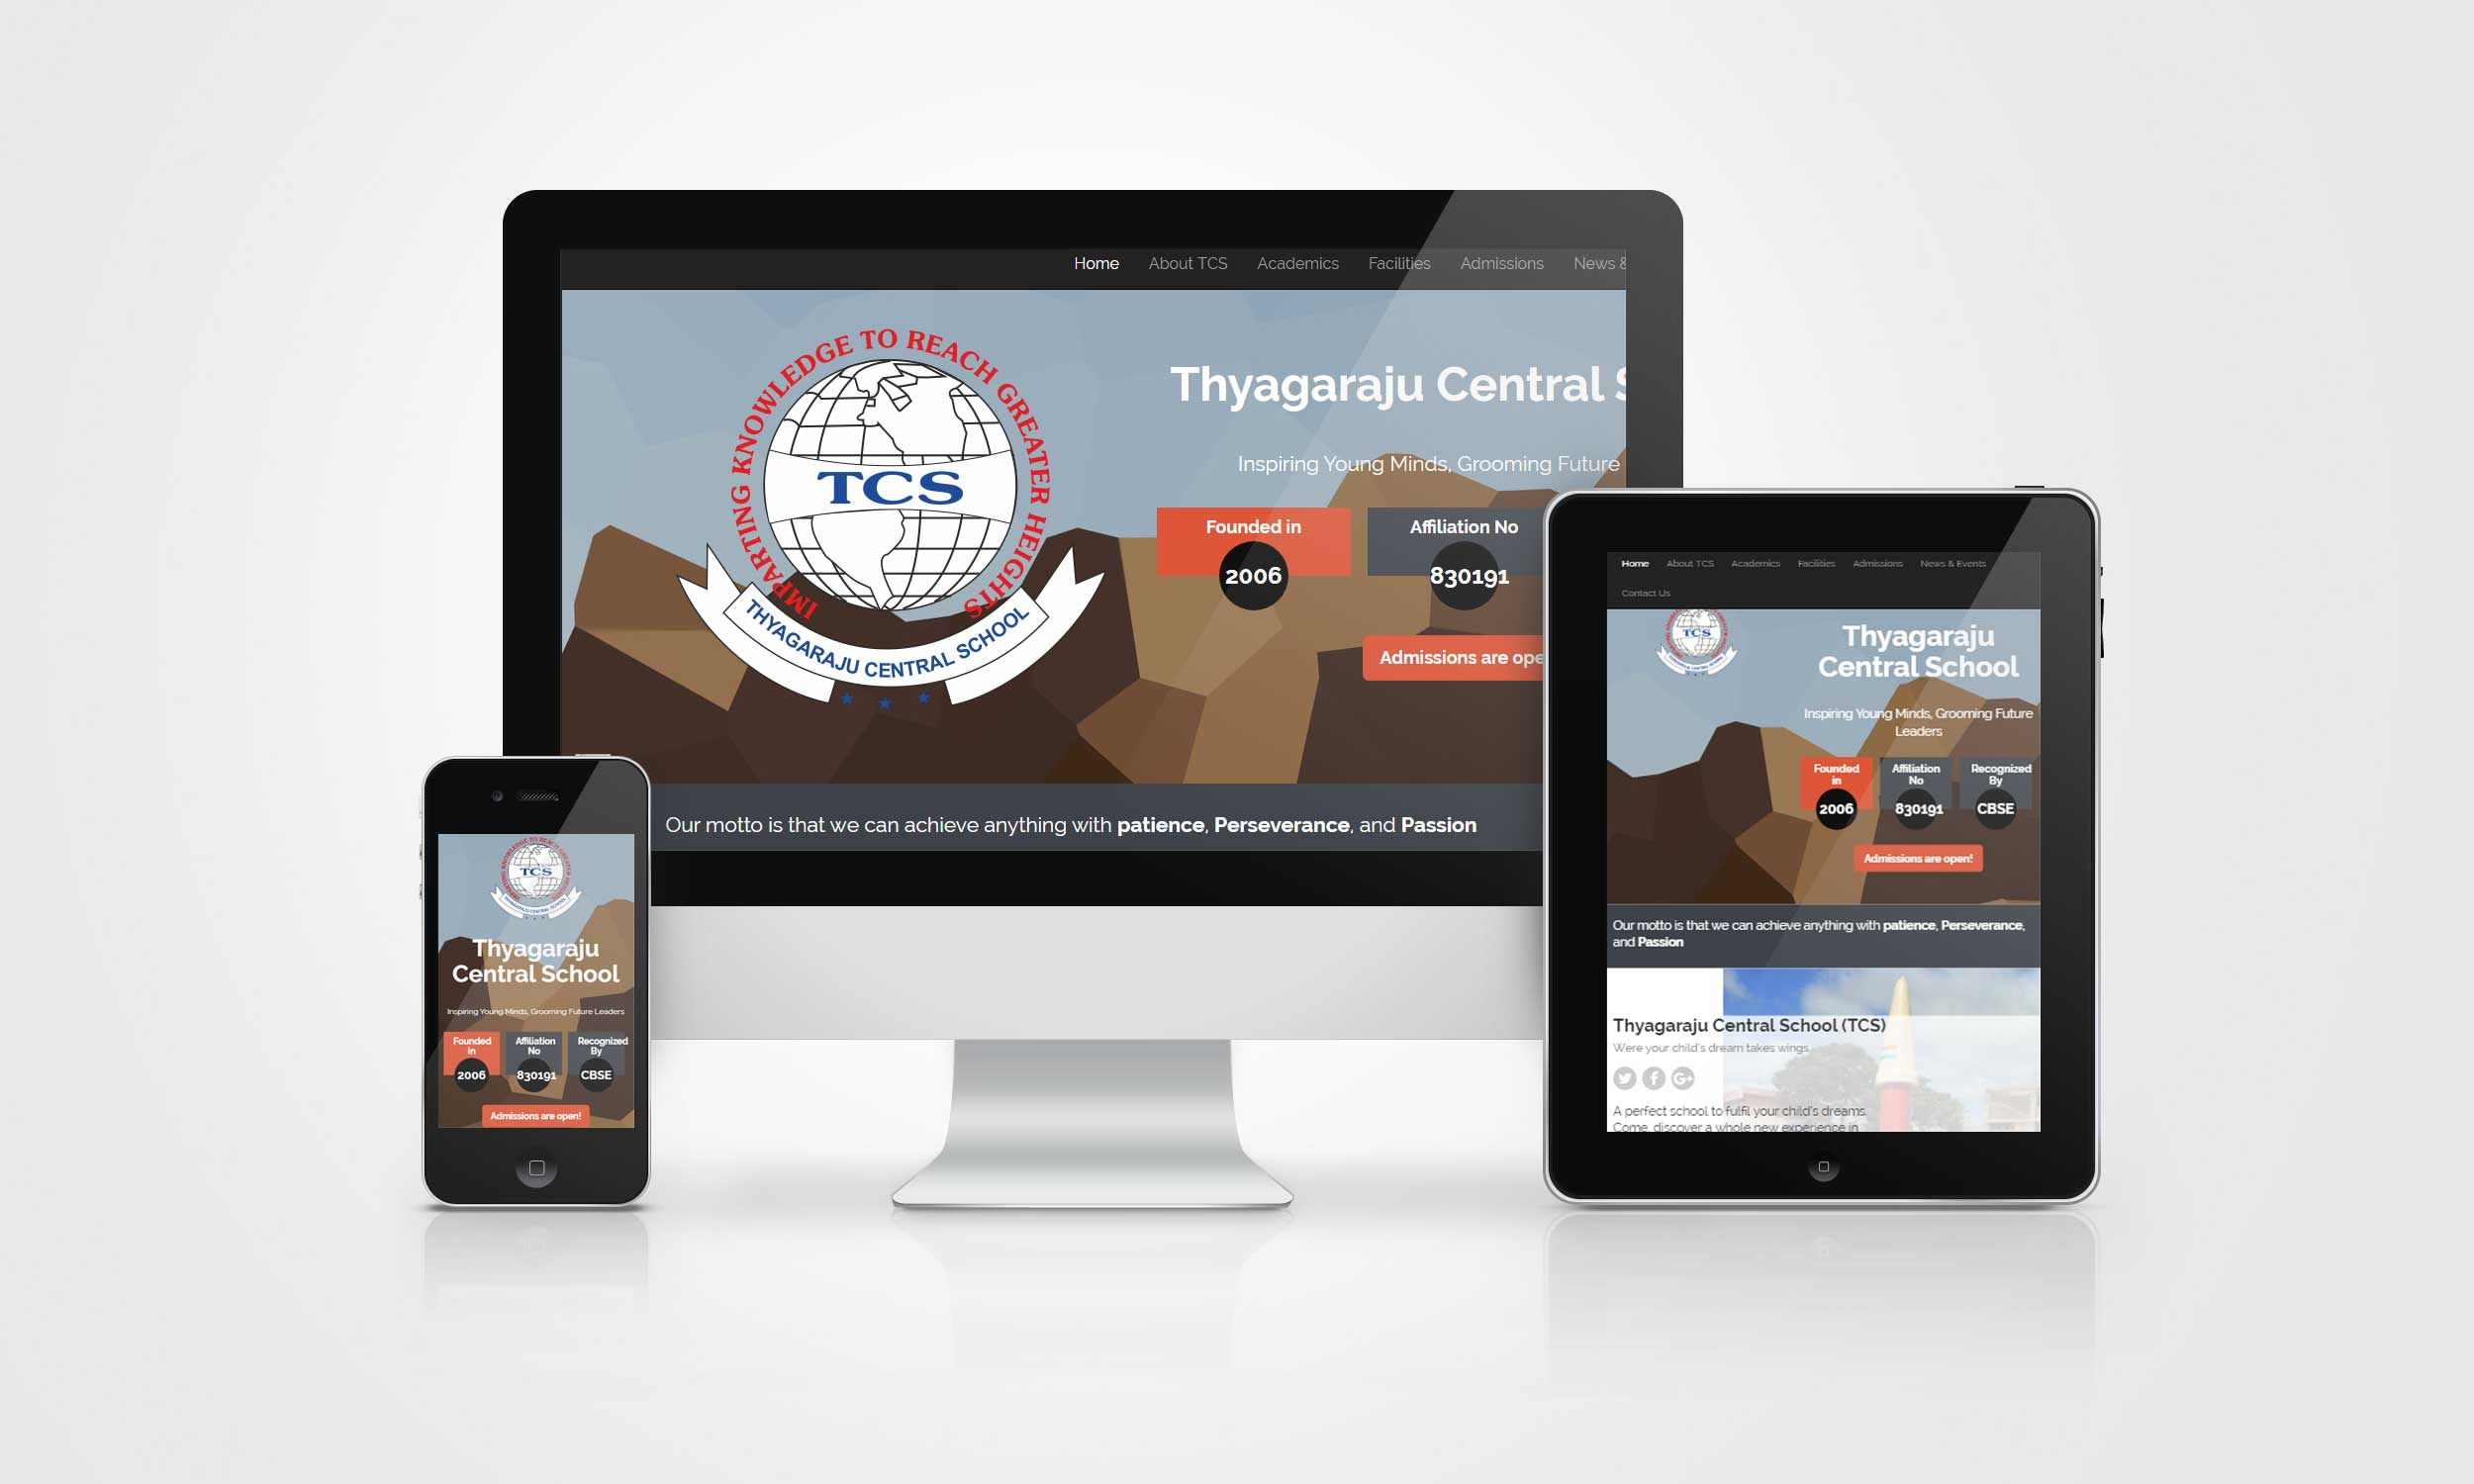 Pelwhiz Portfolio - Thyagaraju Central School - Website